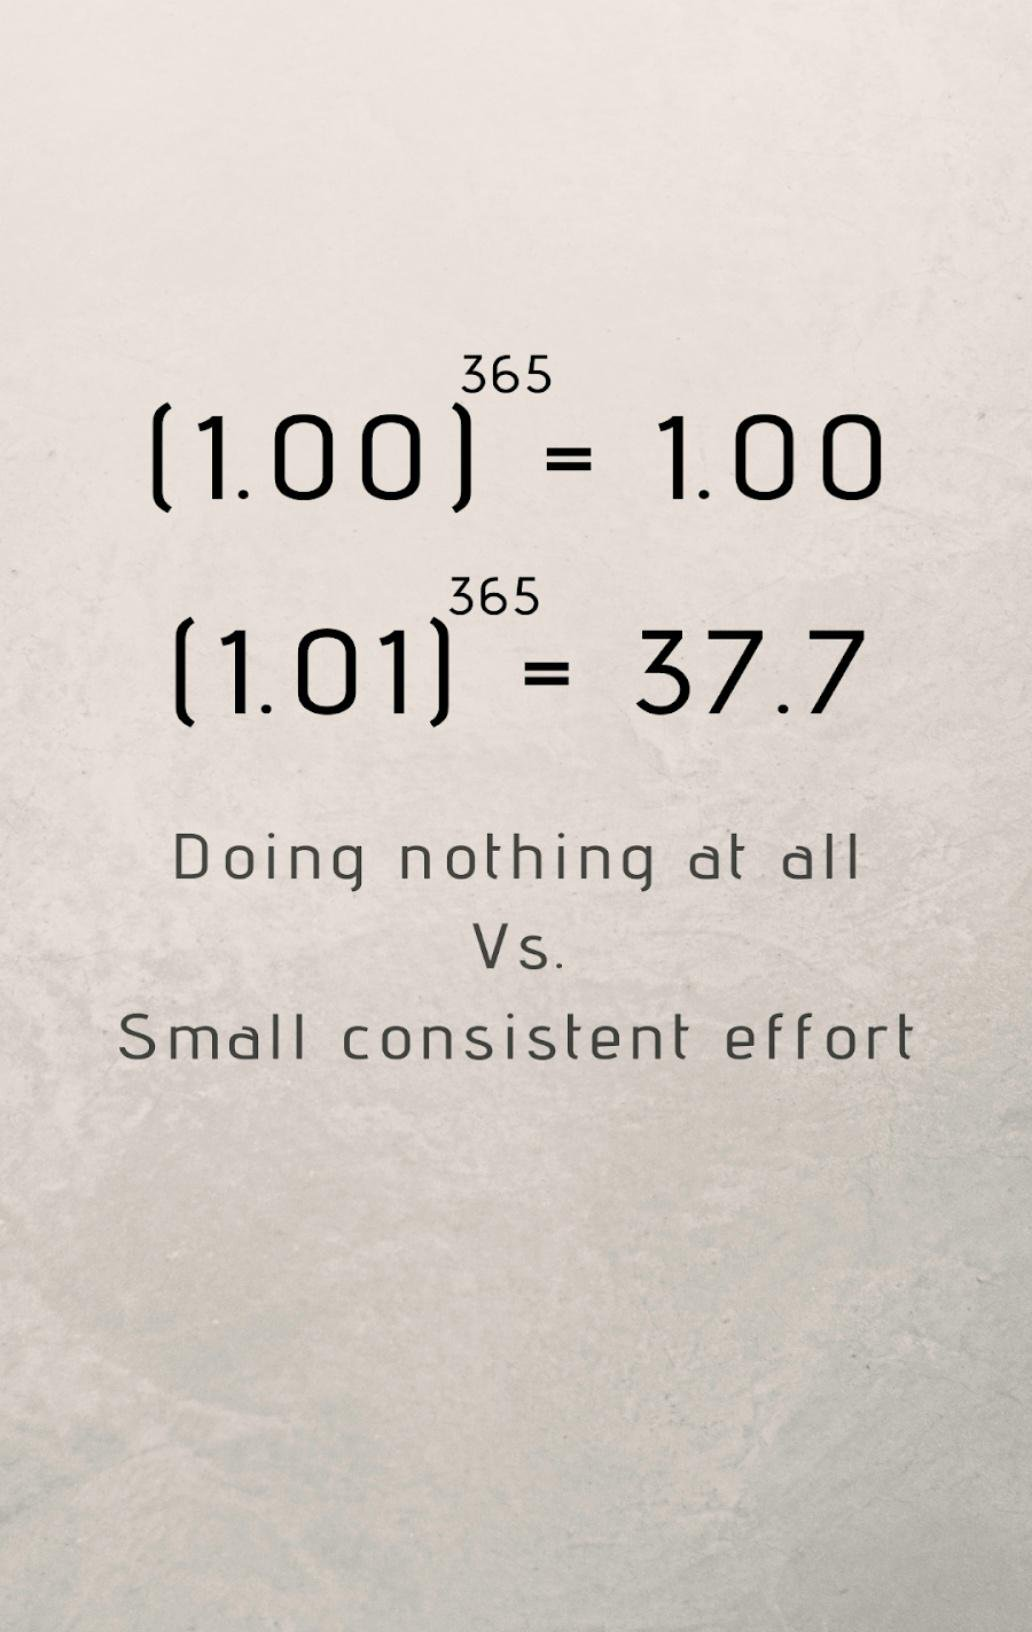 [Image] Even a 1% increase in effort every day can make a huge difference. You can do it.